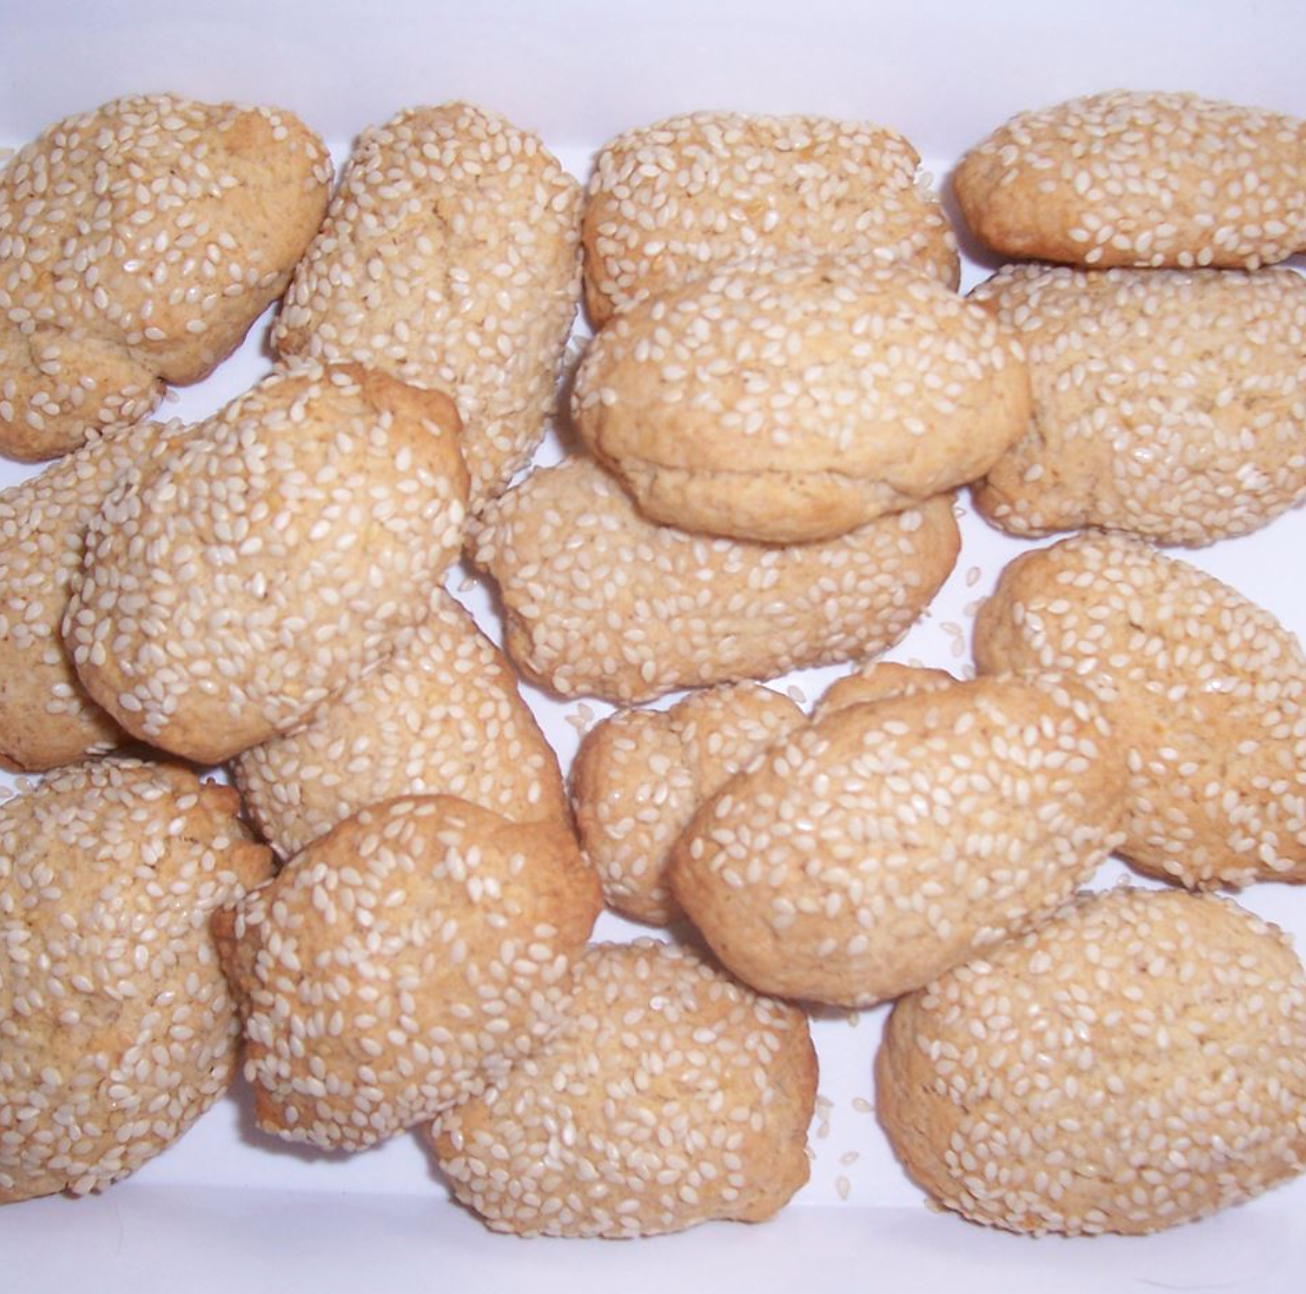 Biscotti Regina are small Italian cookies coated in sesame seeds. This recipe is perfect for people who love a salty-sweet flavor combination.